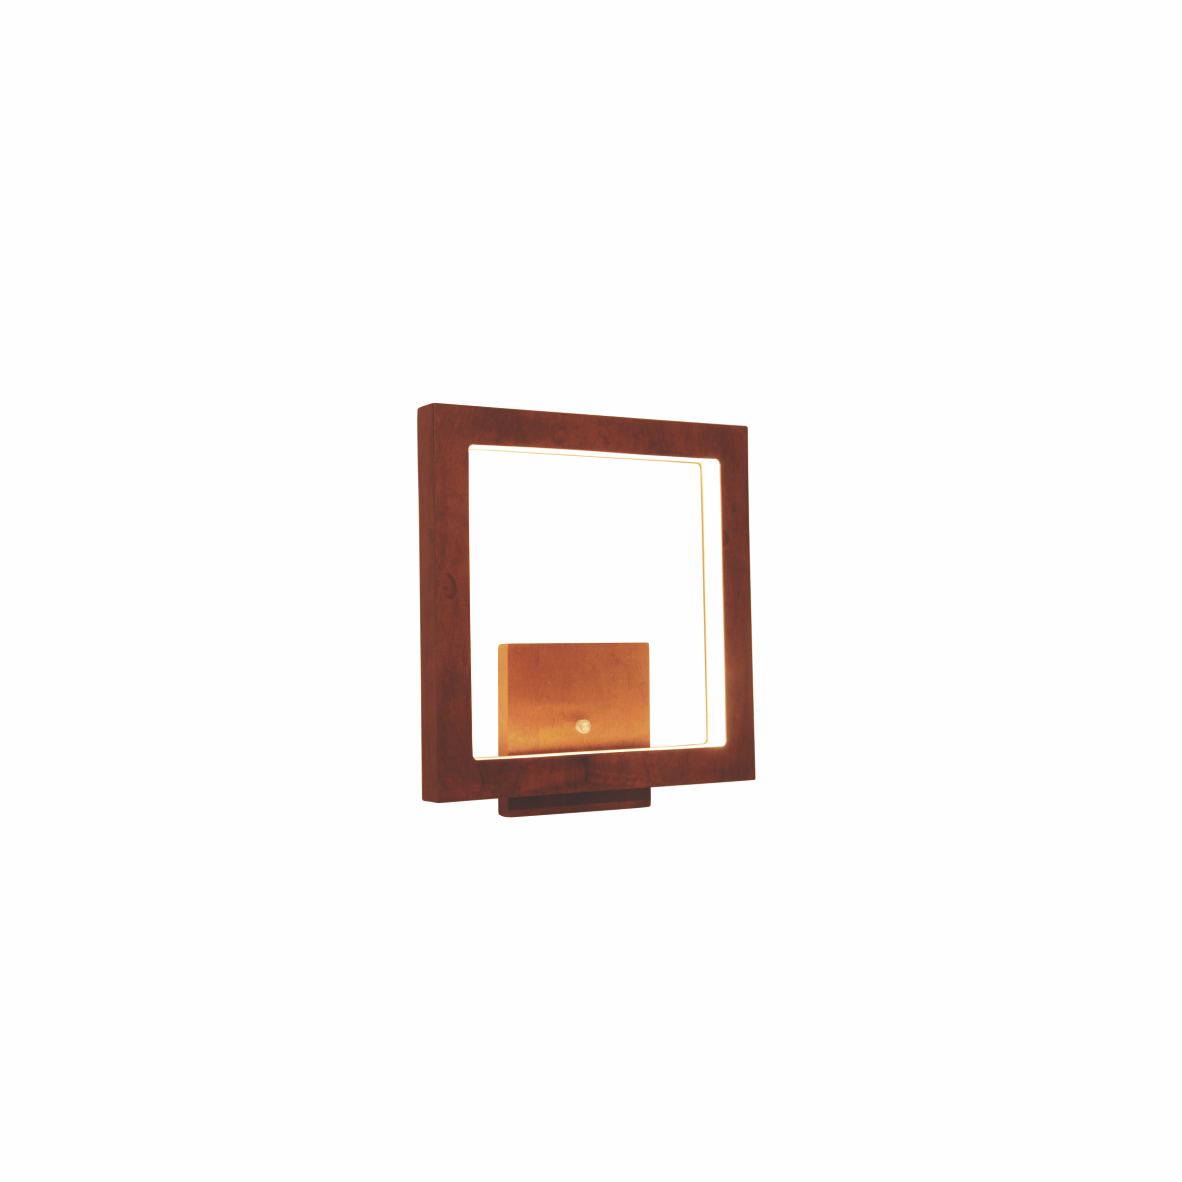 Wall Lamp Accord Frame 4116 - Frame Line Accord Lighting